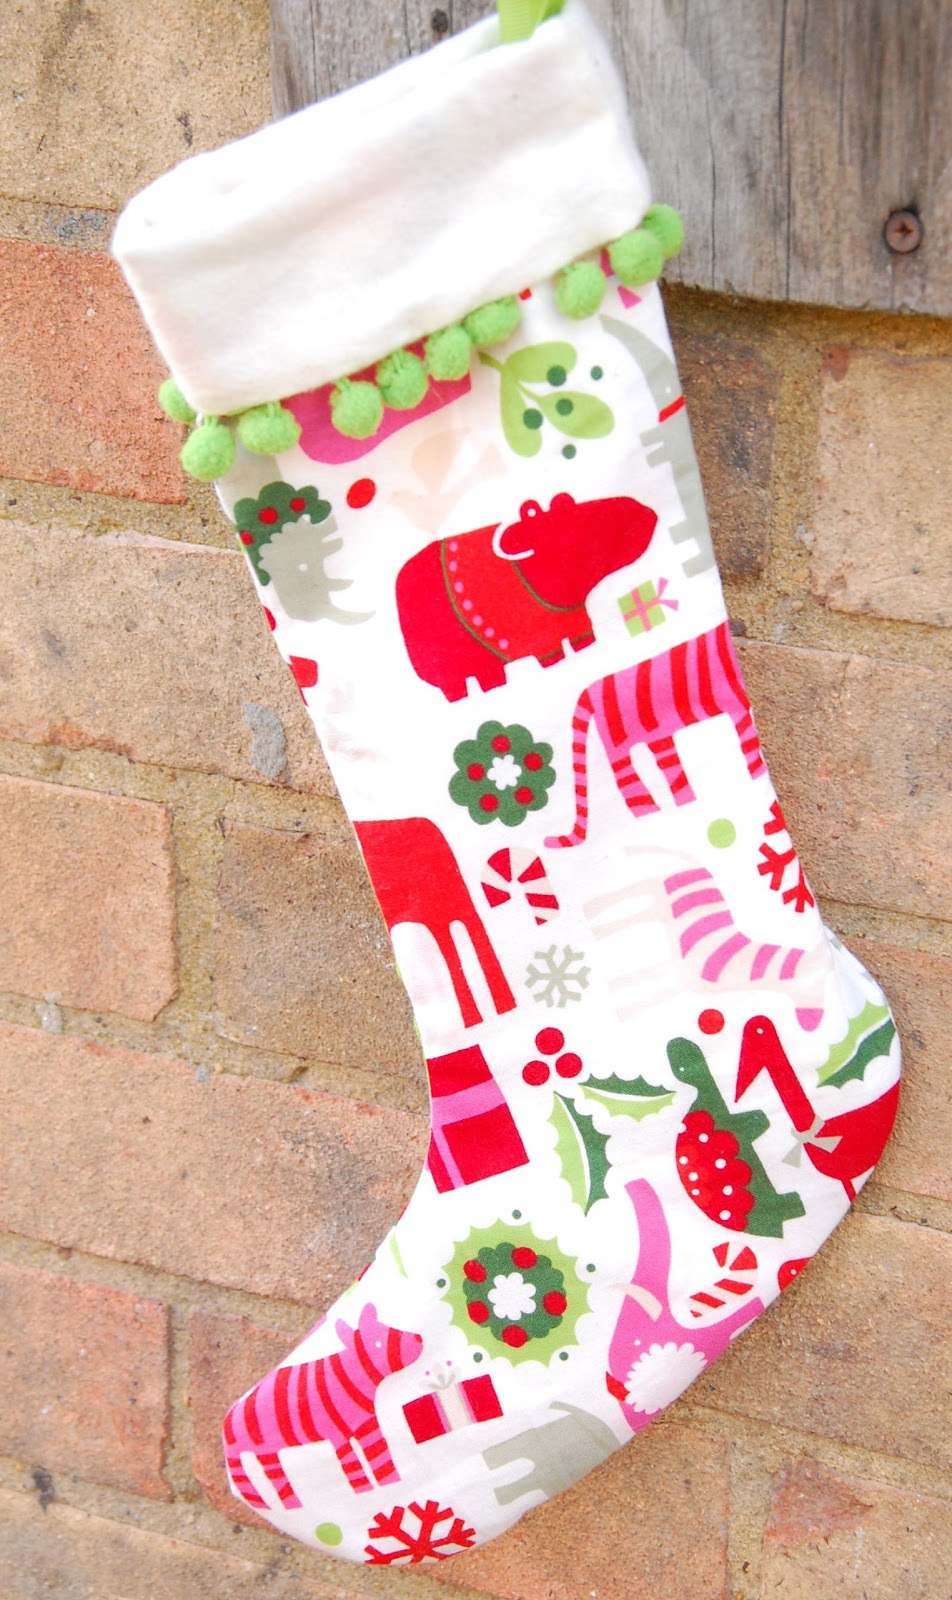 Assemble the Stocking. 1. Layer one stocking shape and one stocking lining shape with right sides (printed sides) together. Pin the top of the layered stockings together. 2. Sew the top of the stocking shapes using a 1/4